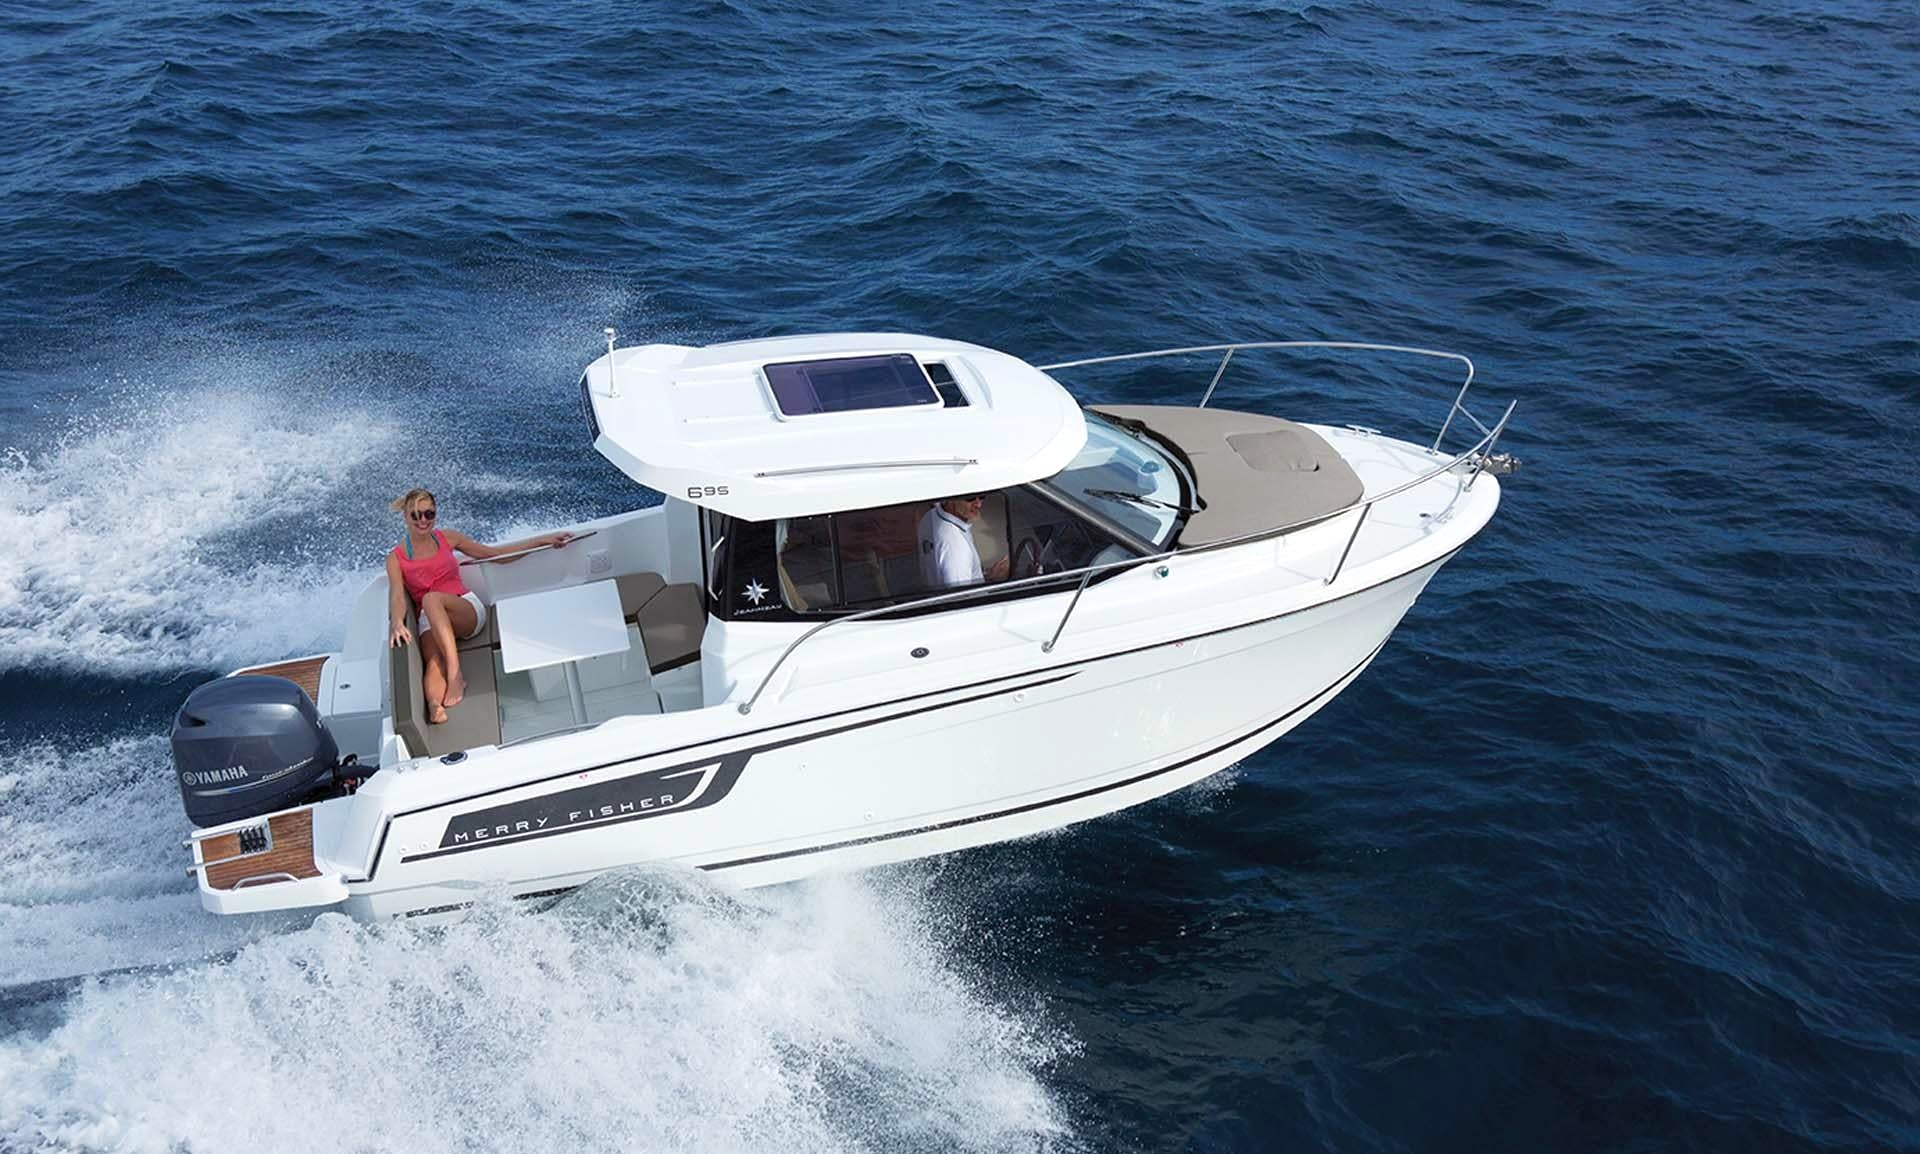 Jeanneau Merry Fisher 695 for Rent in Portoroz Slovenia